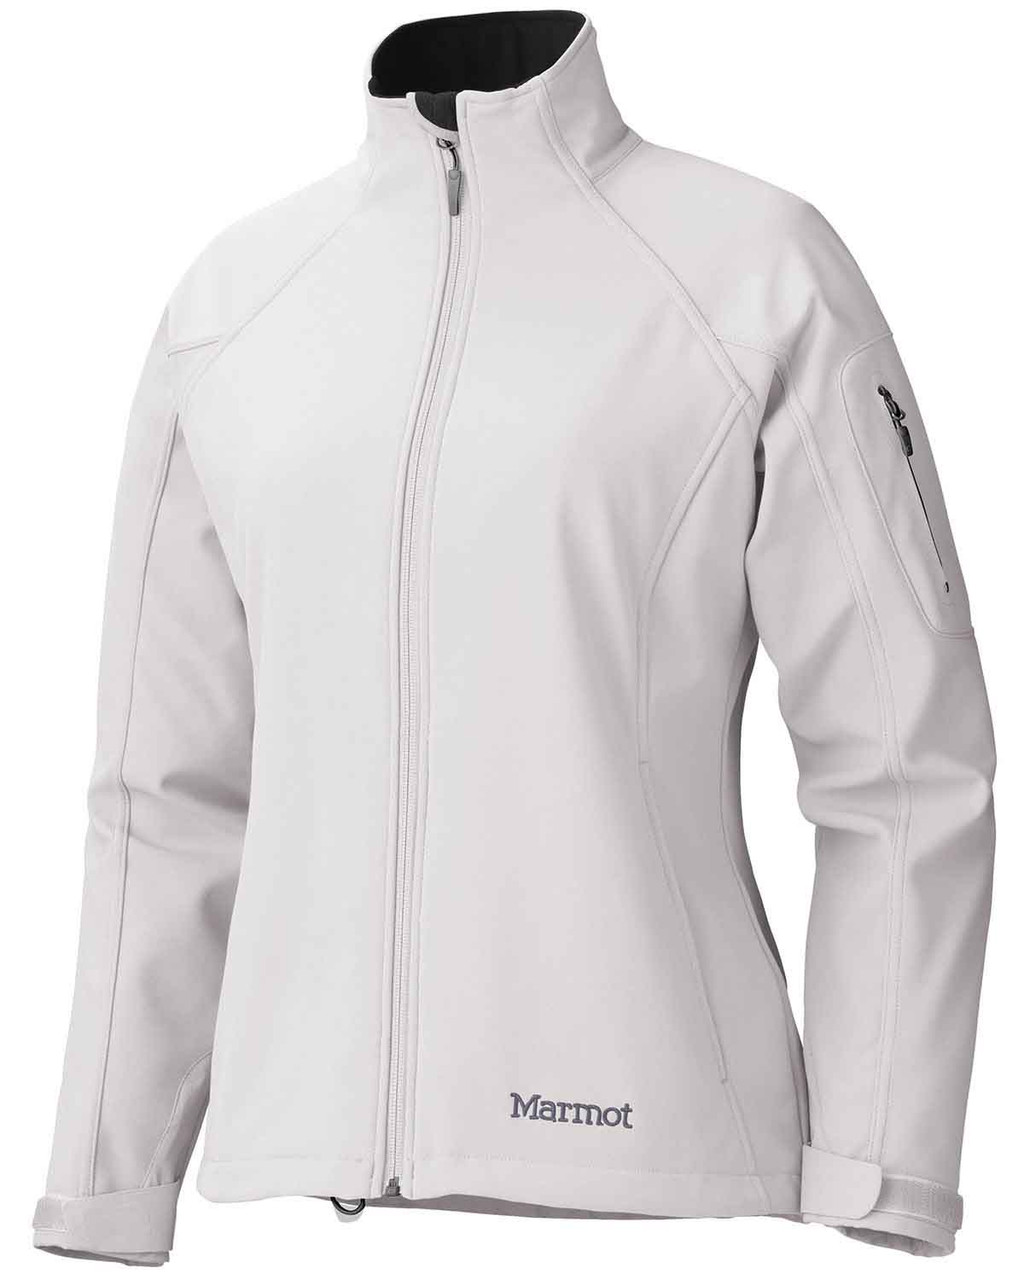 Glacier Grey - Jacket, 85000 Marmot Ladies' Gravity Jacket | BlankClothing.ca